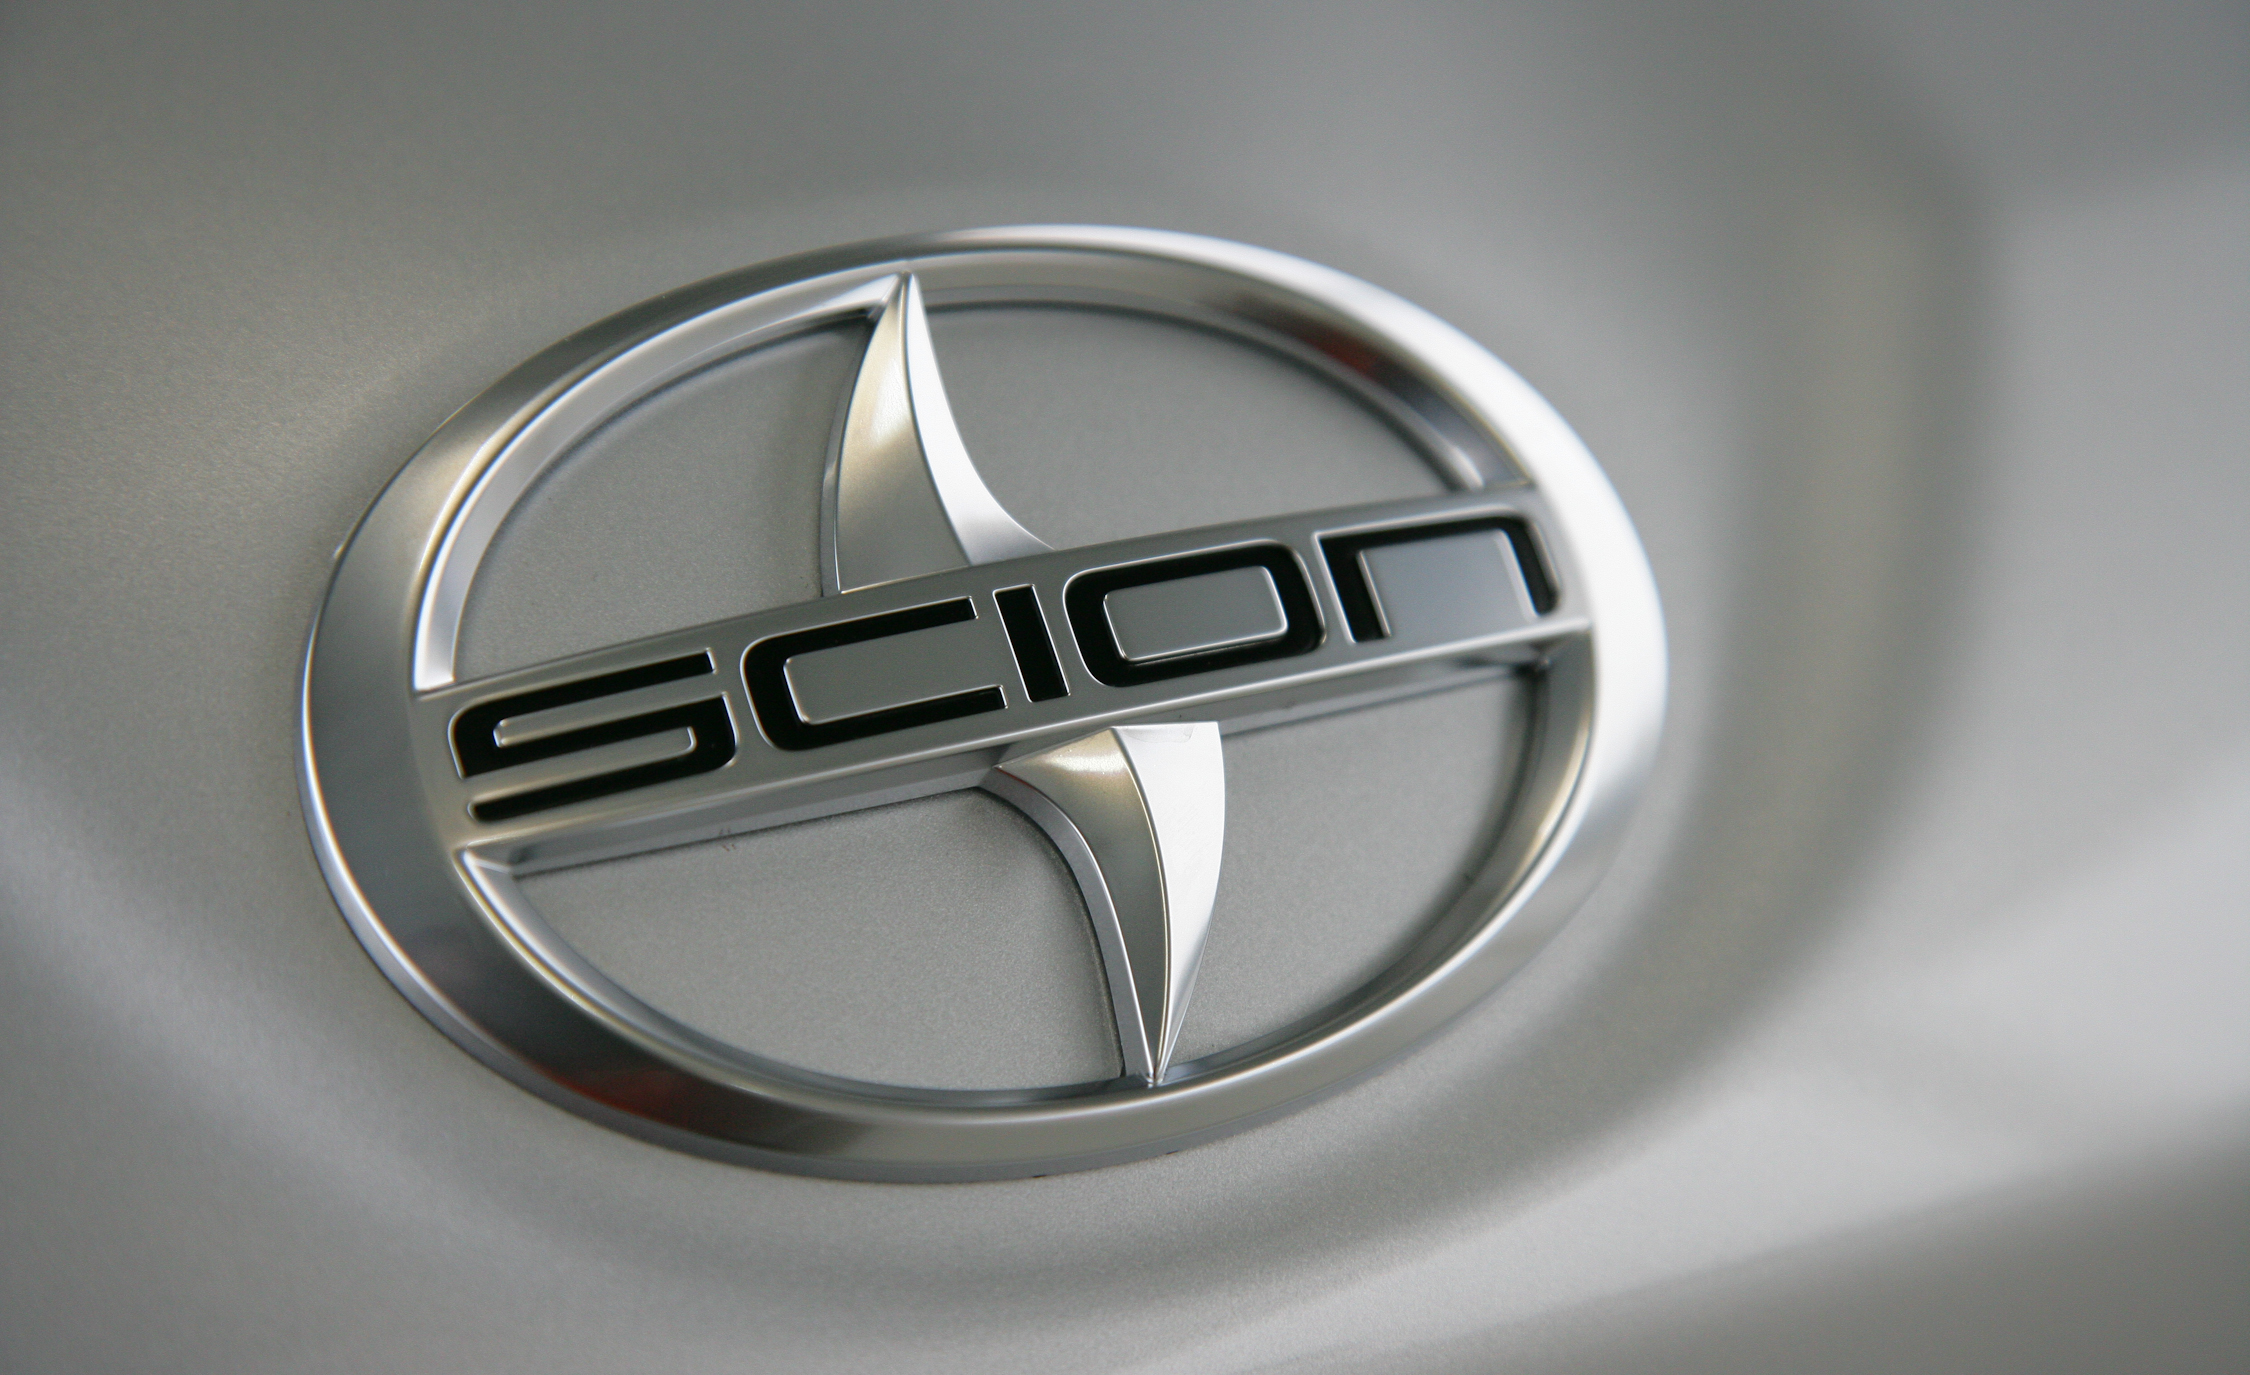 2013 Scion FR S Exterior View Badge (Photo 11 of 47)